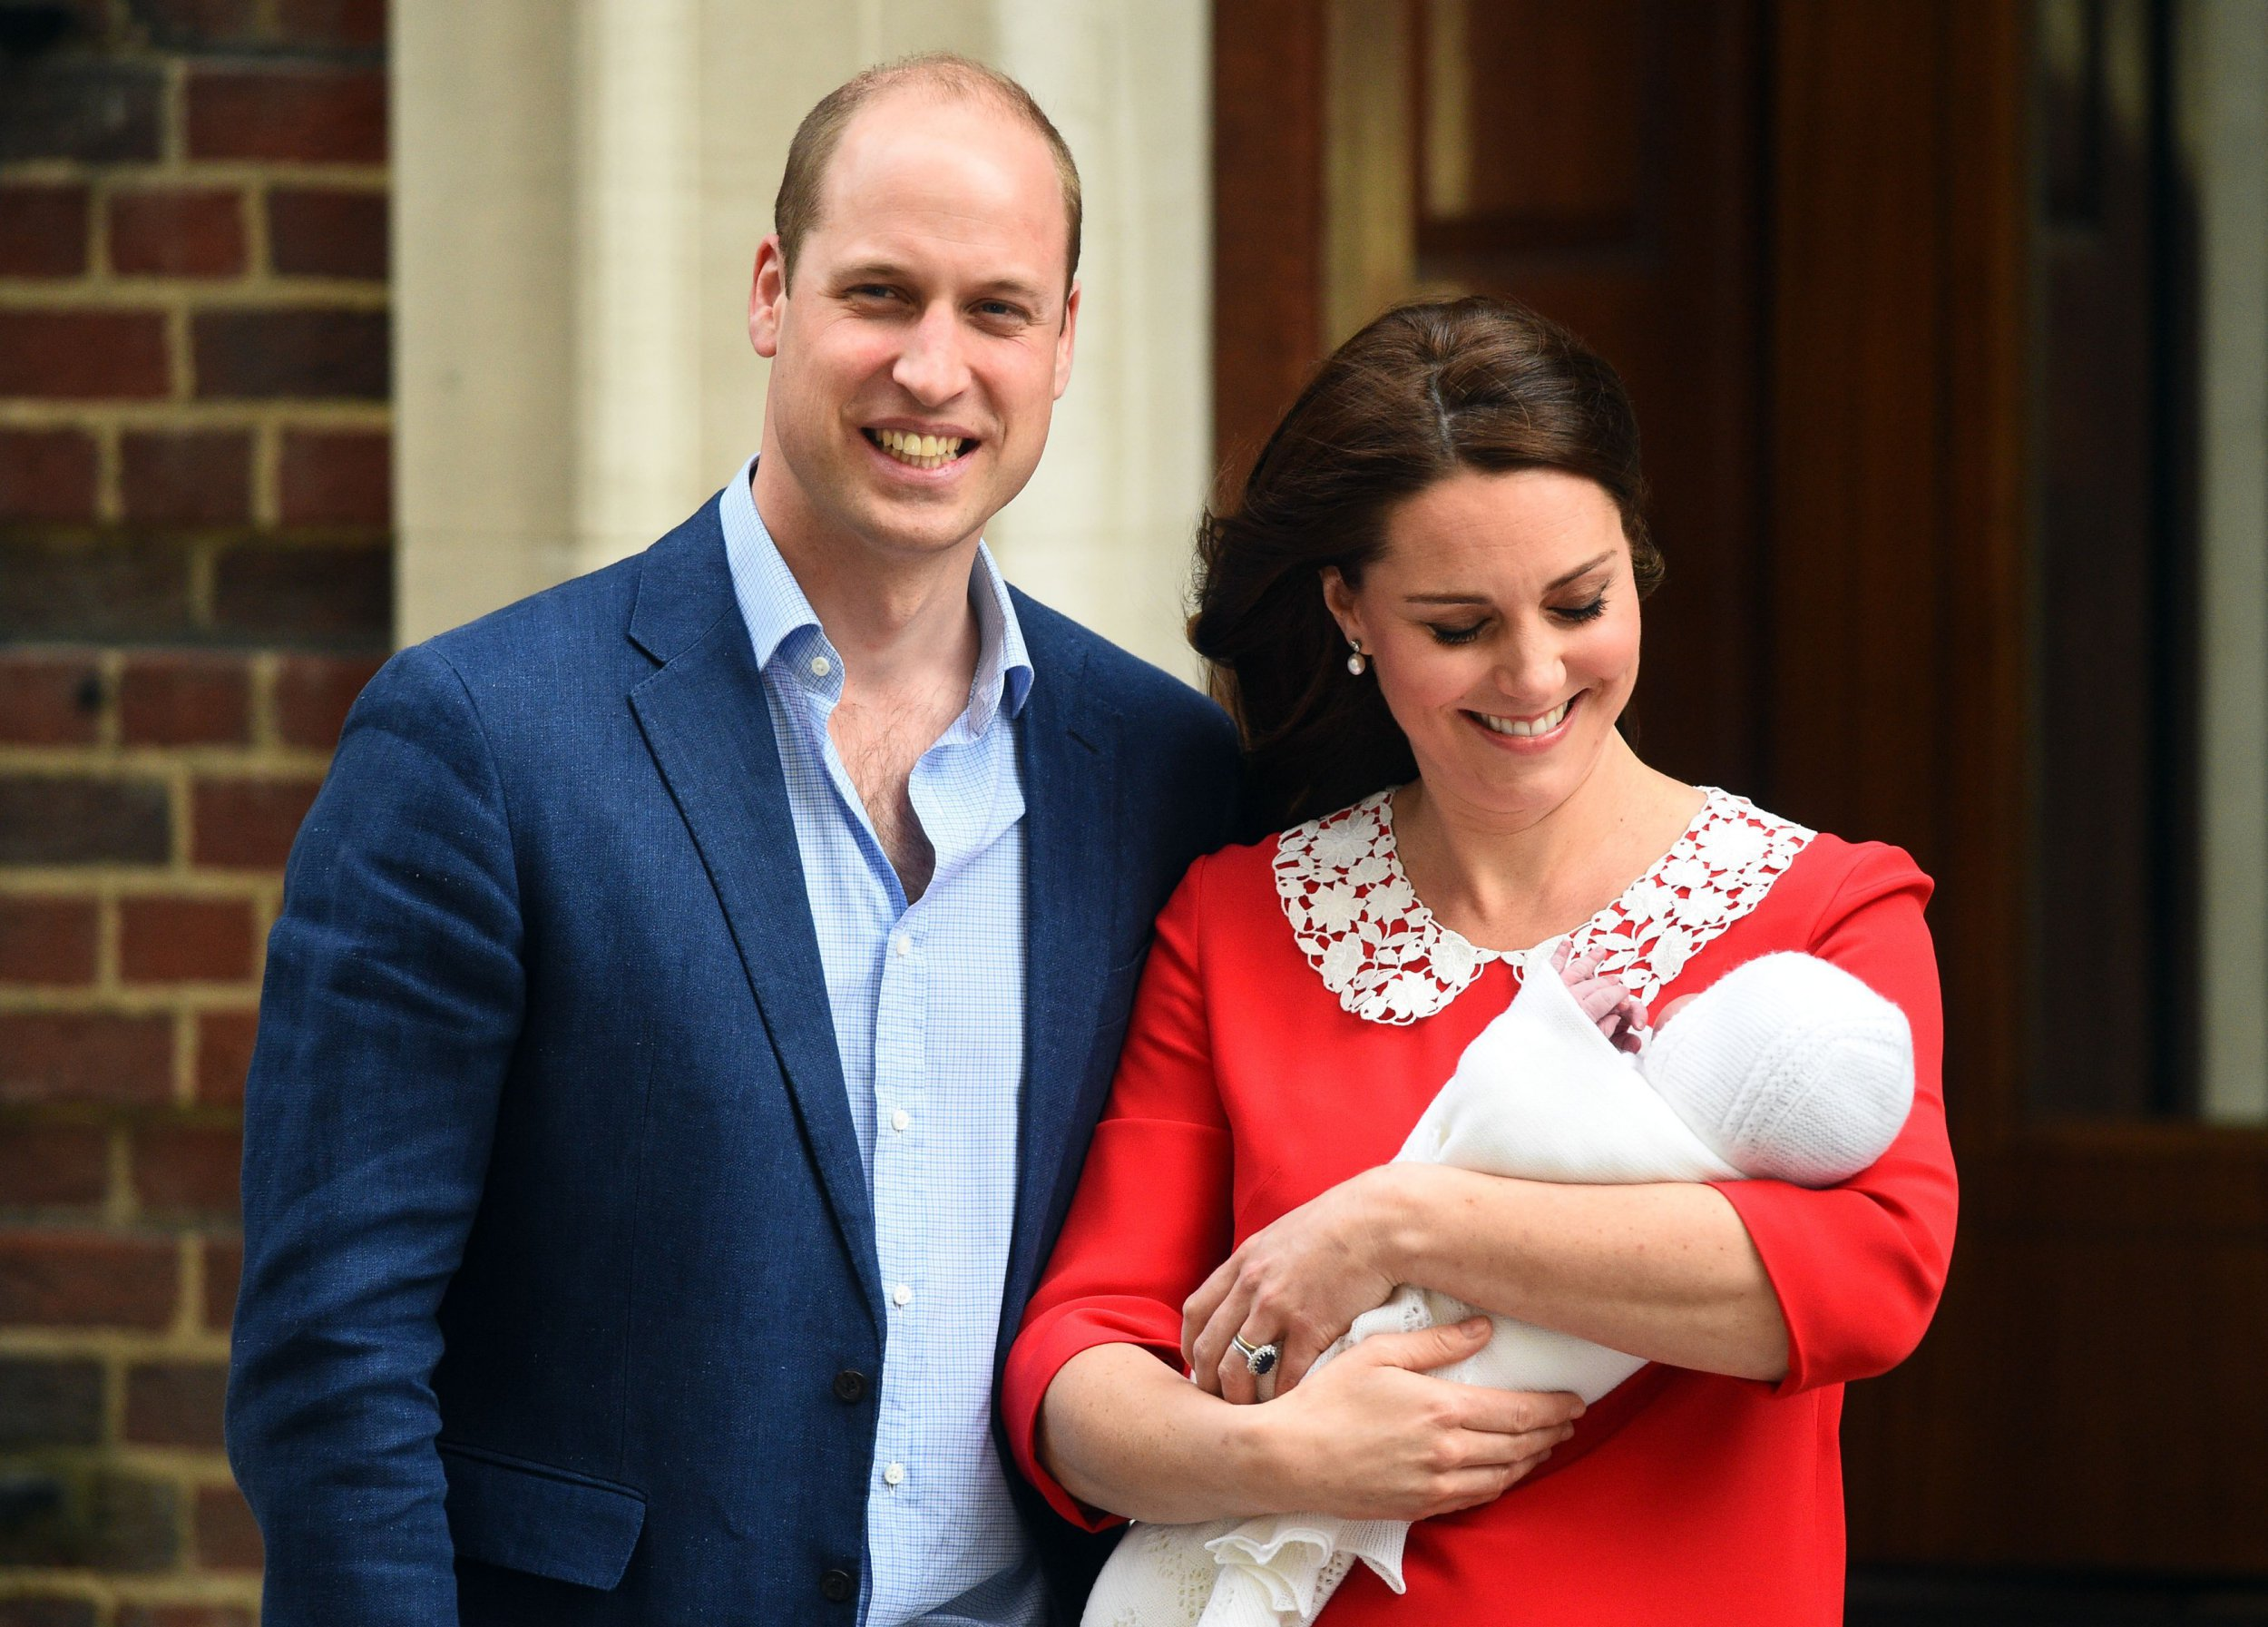 The Duke and Duchess of Cambridge and their newborn son outside the Lindo Wing at St Mary's Hospital in Paddington, London. PRESS ASSOCIATION Photo. Picture date: Monday April 23, 2018. See PA story ROYAL Baby. Photo credit should read: Kirsty O'Connor/PA Wire